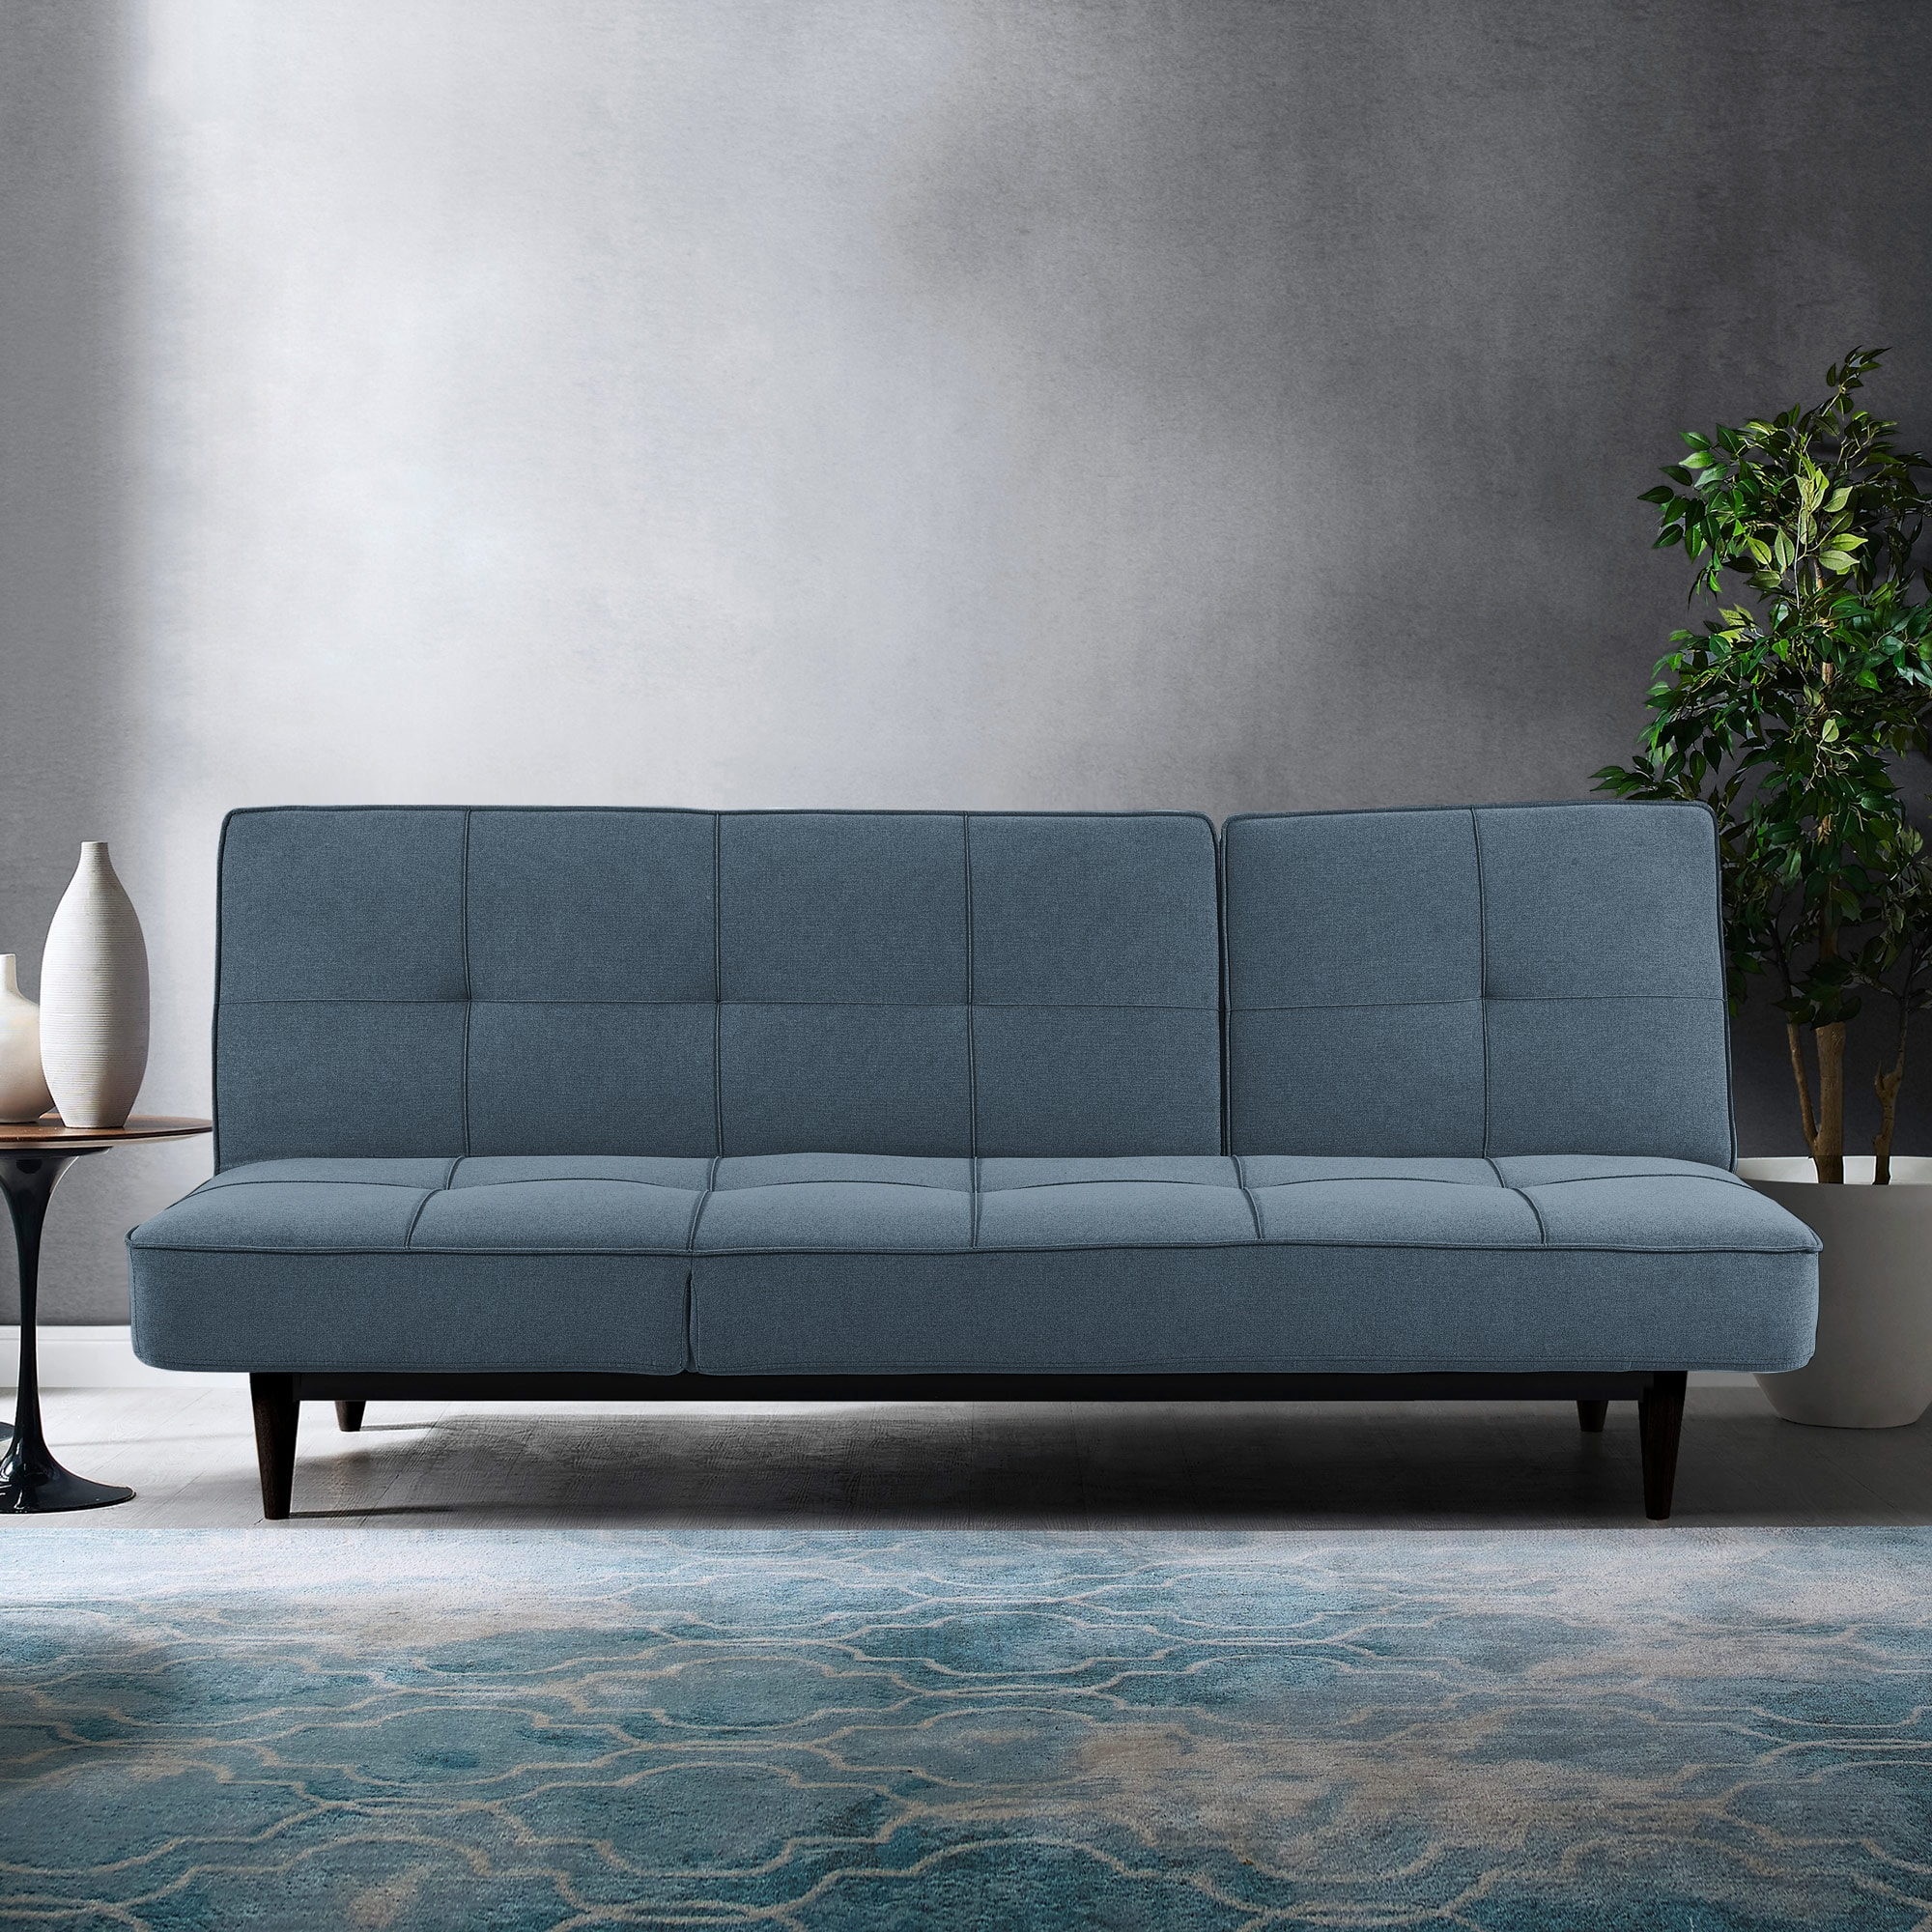 Russell Sydney Blue Triple Splitback Convertible Sofa with Chaise